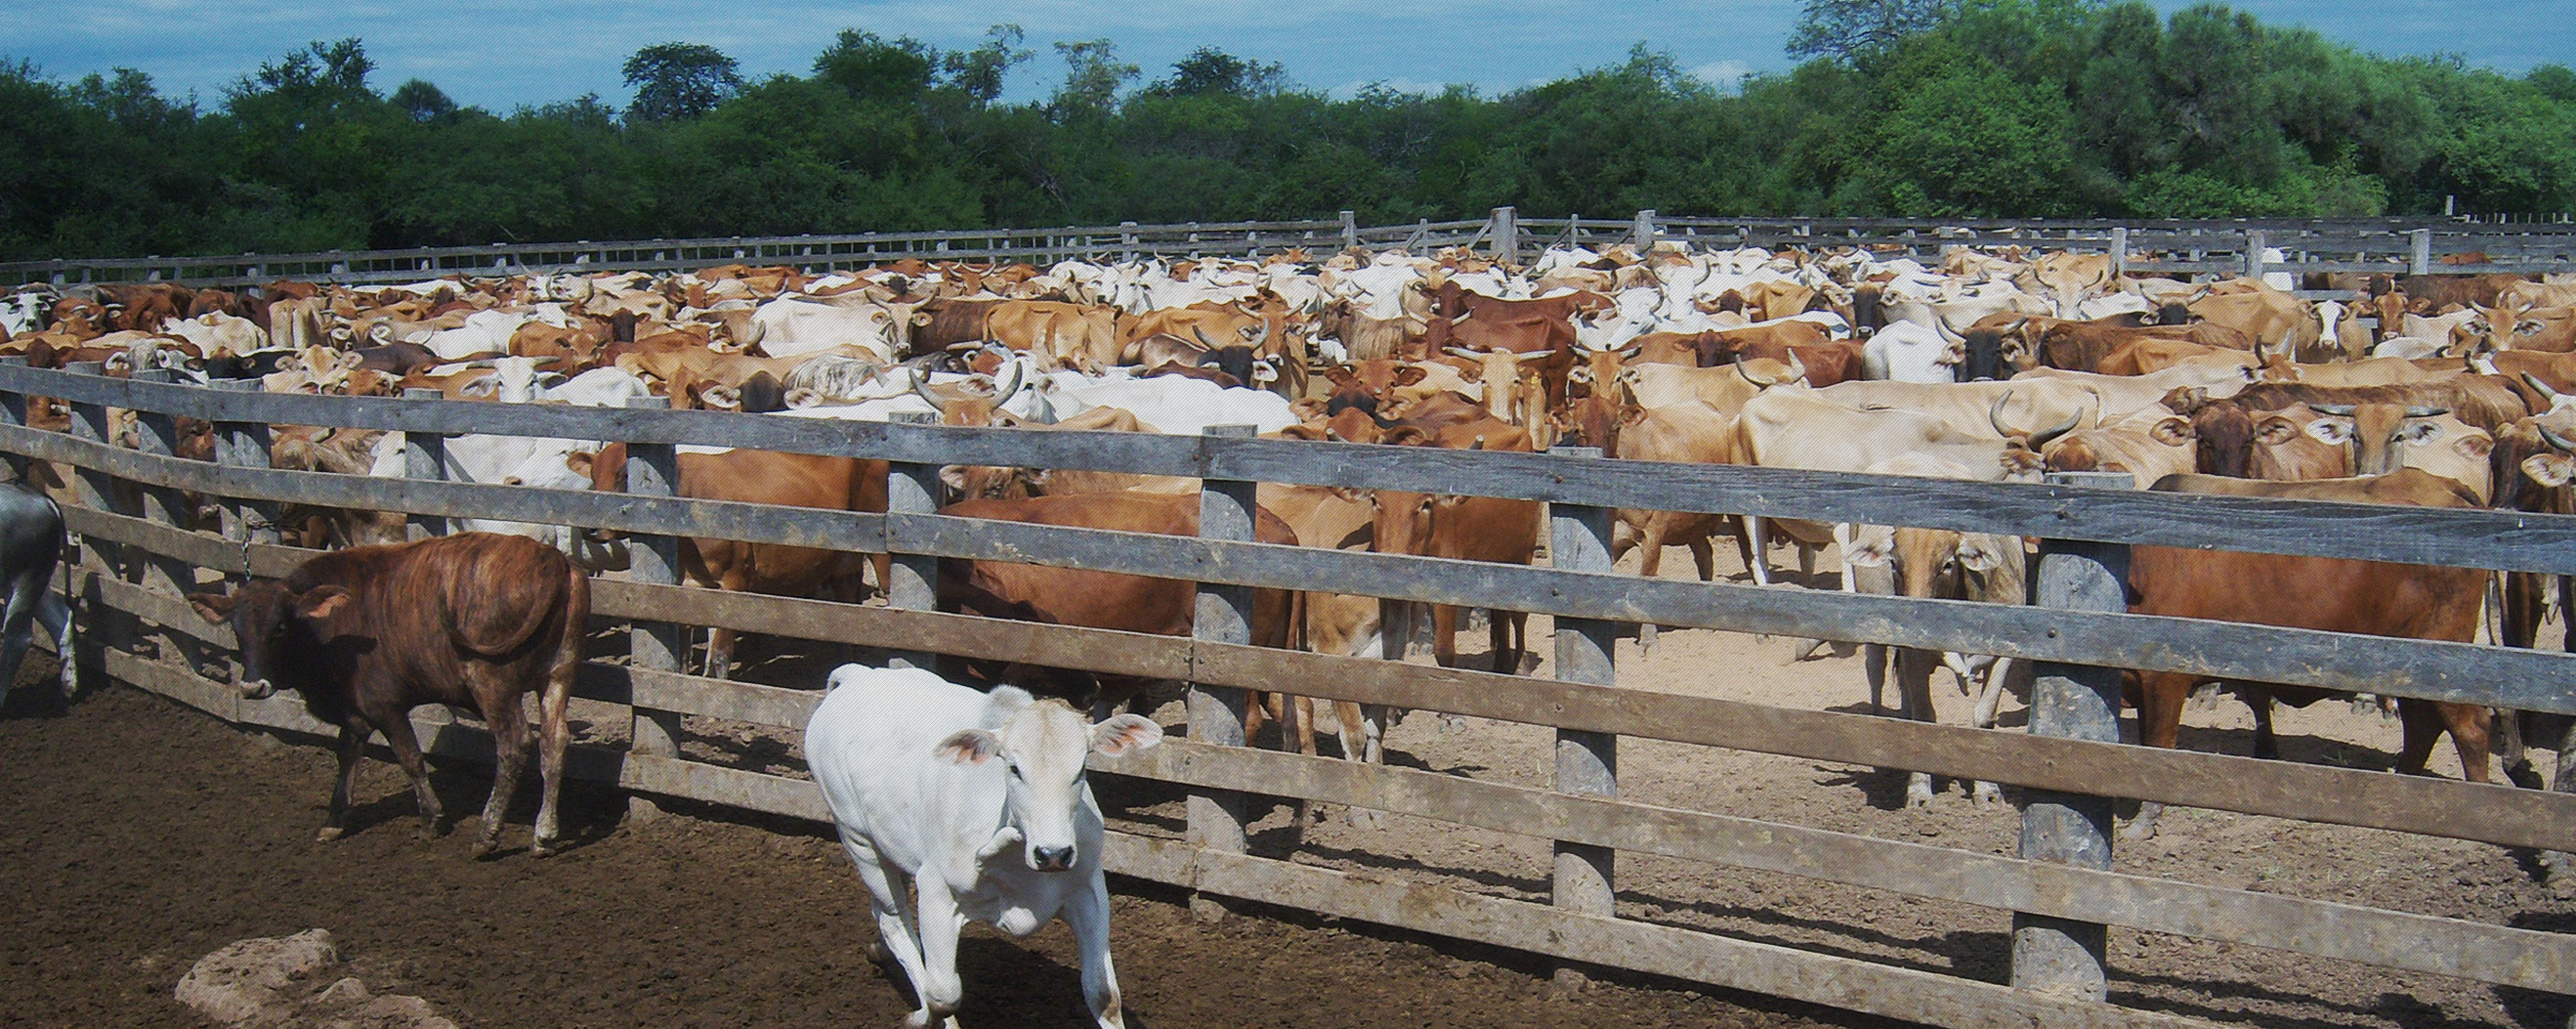 paraguay-cow-investment-opportunity